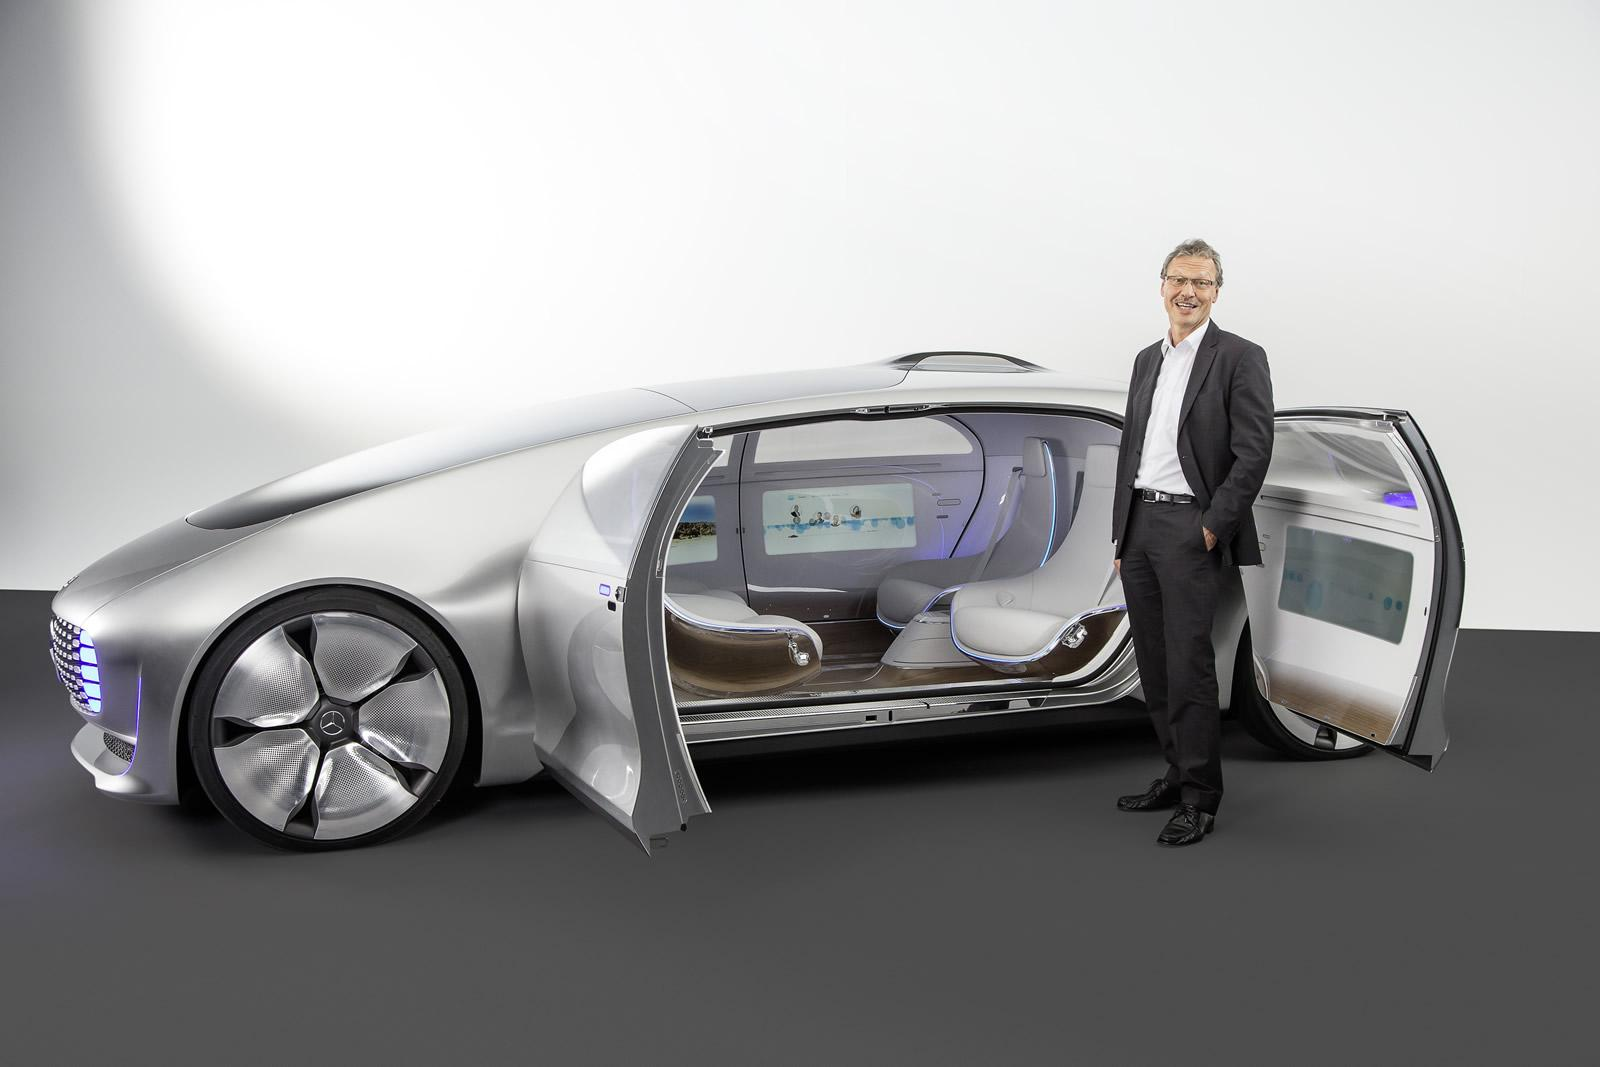 Auto industry innovations in 2015 hybrids self driving for Mercedes benz car names